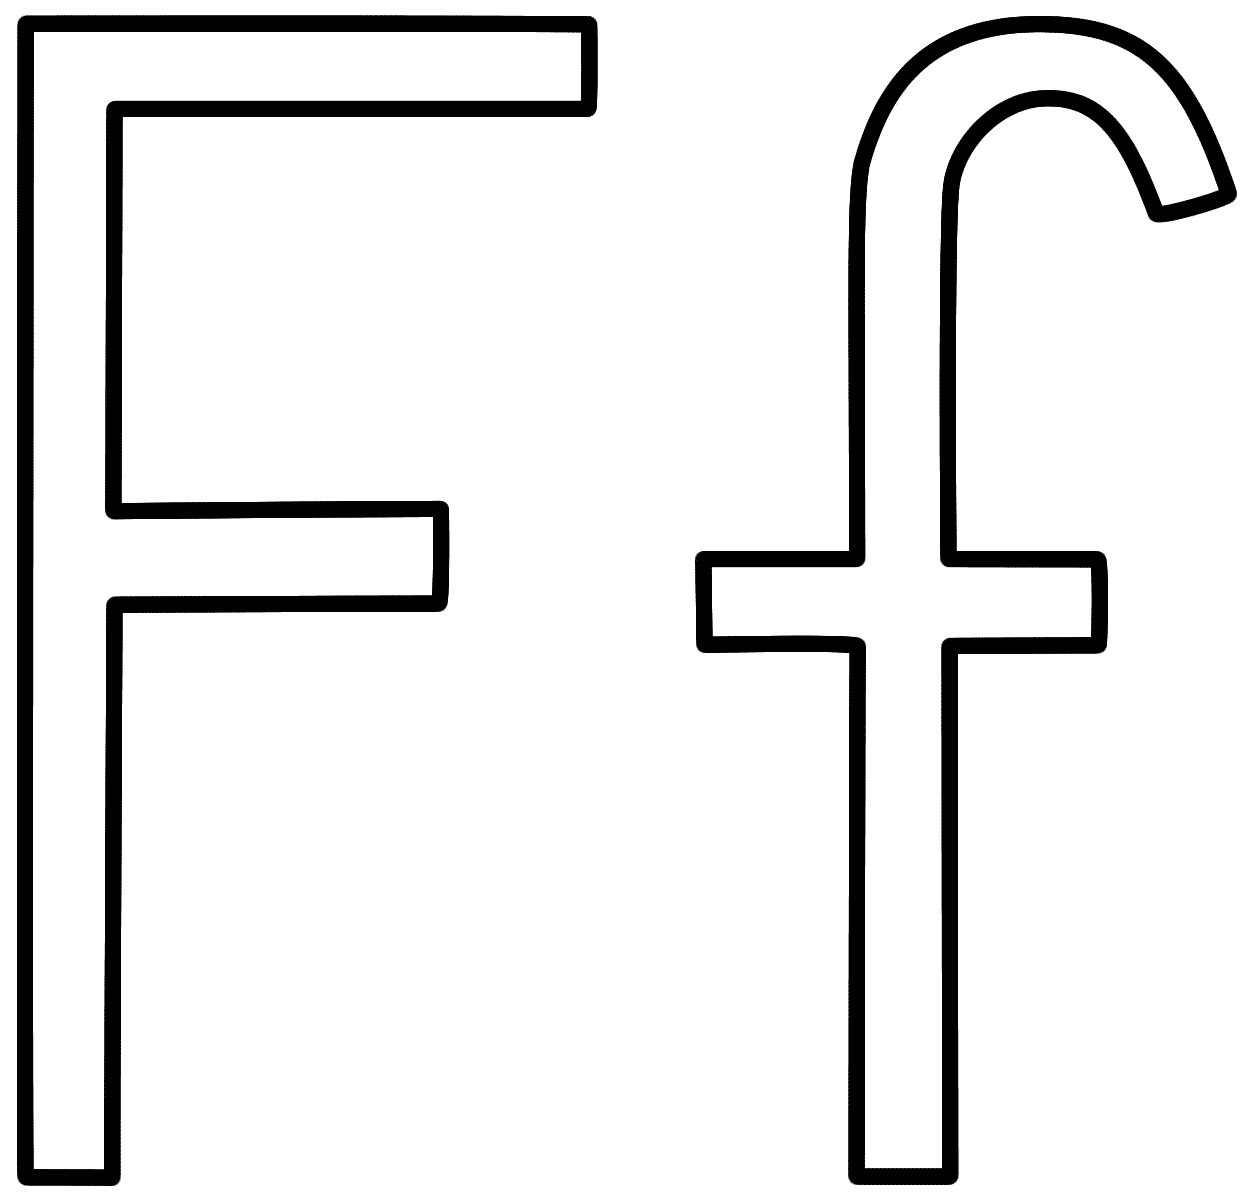 letter f for coloring letter f coloring pages to download and print for free f coloring letter for